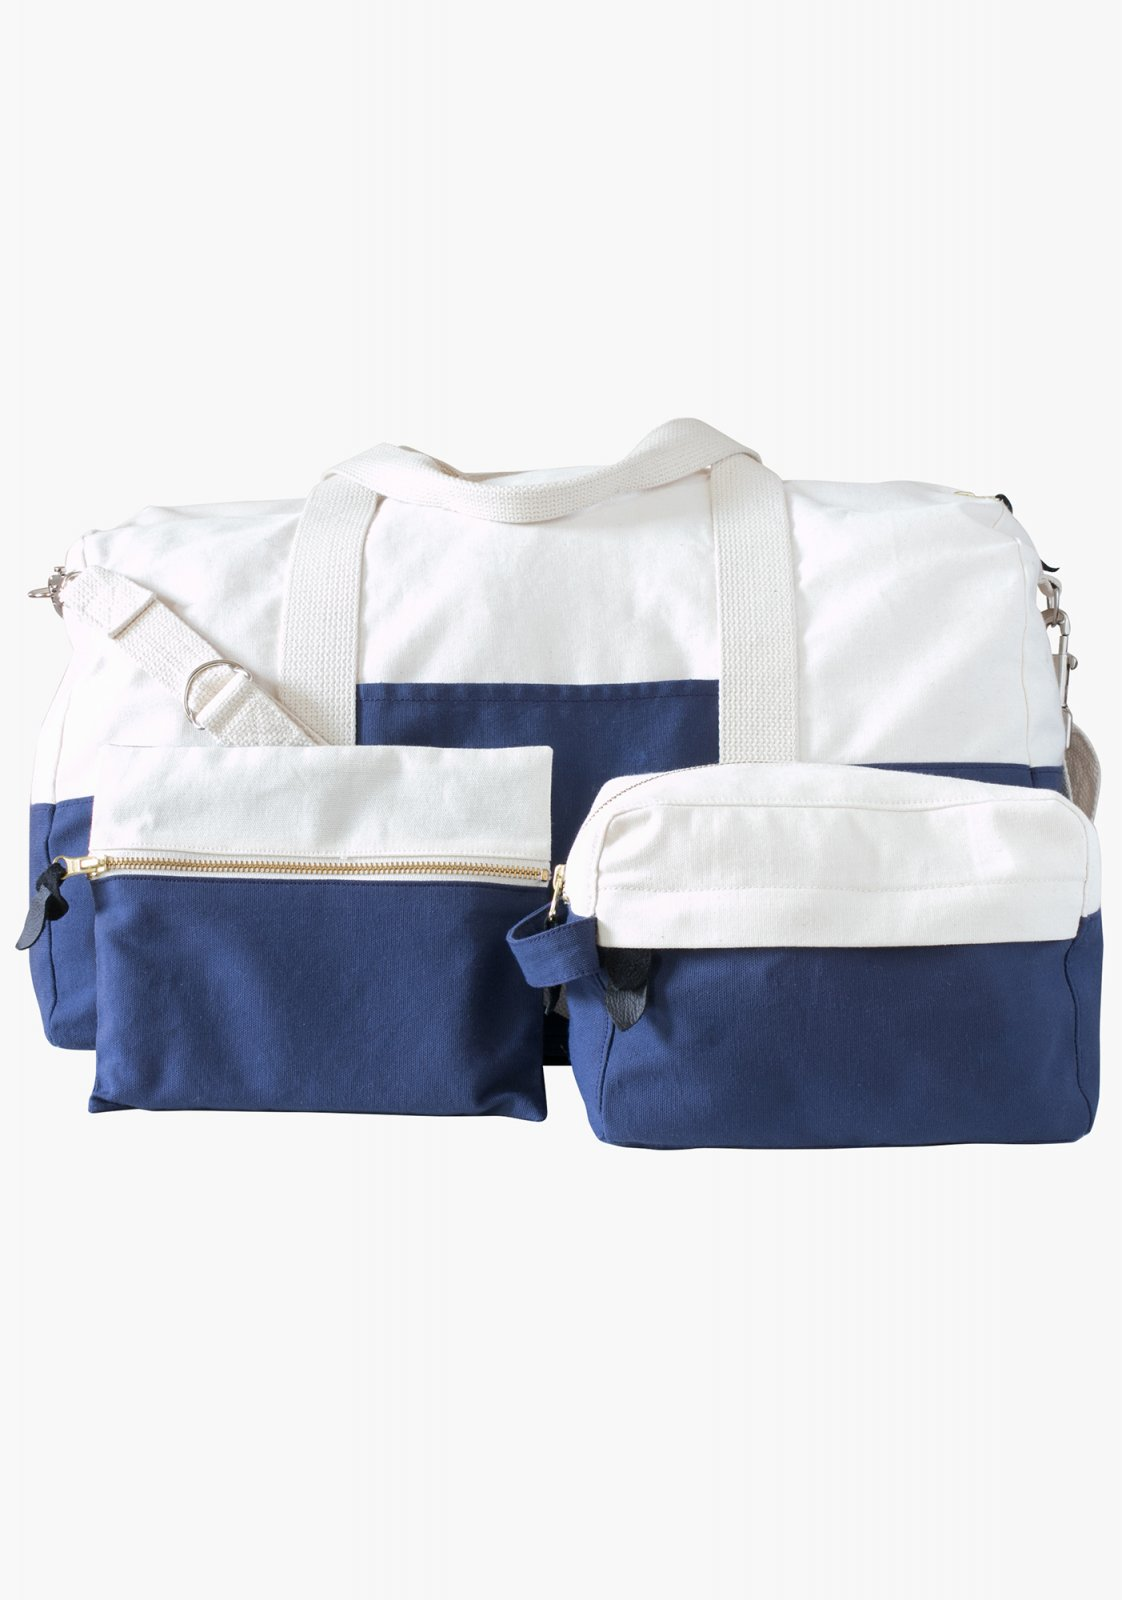 Pattern Portside Travel Accessories Set - Grainline